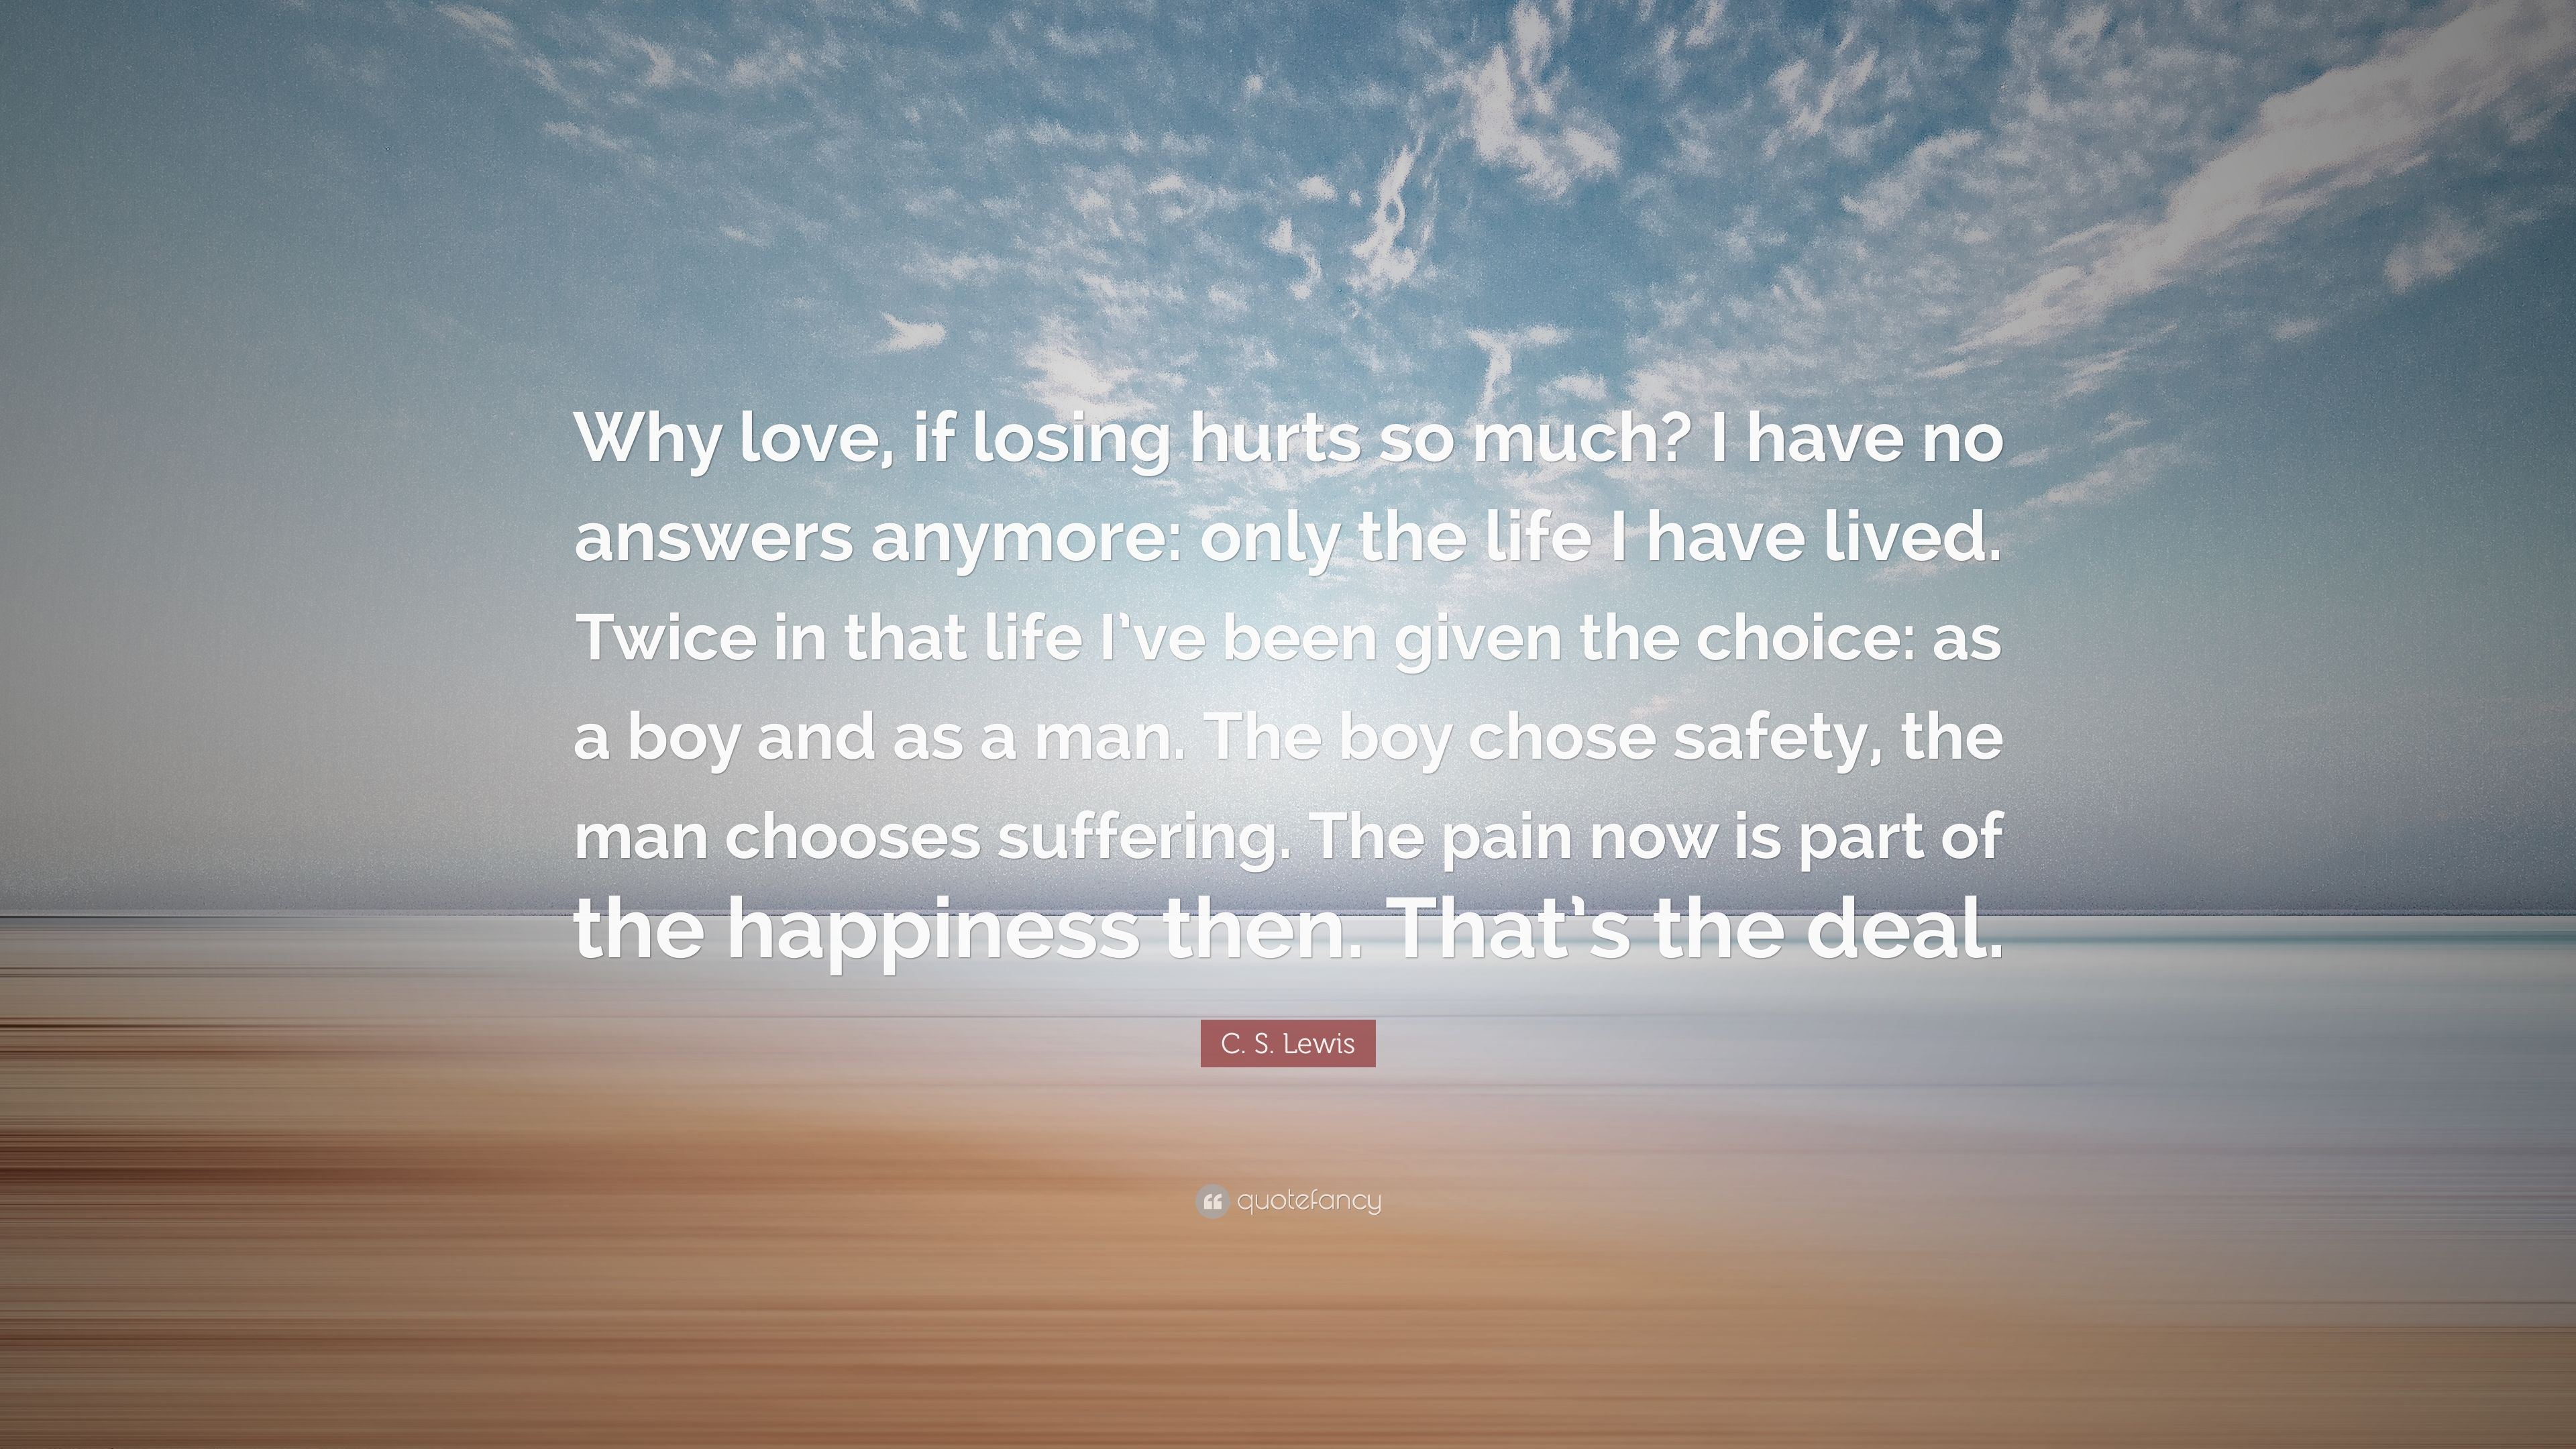 C. S. Lewis Quote: Why love, if losing hurts so much? I